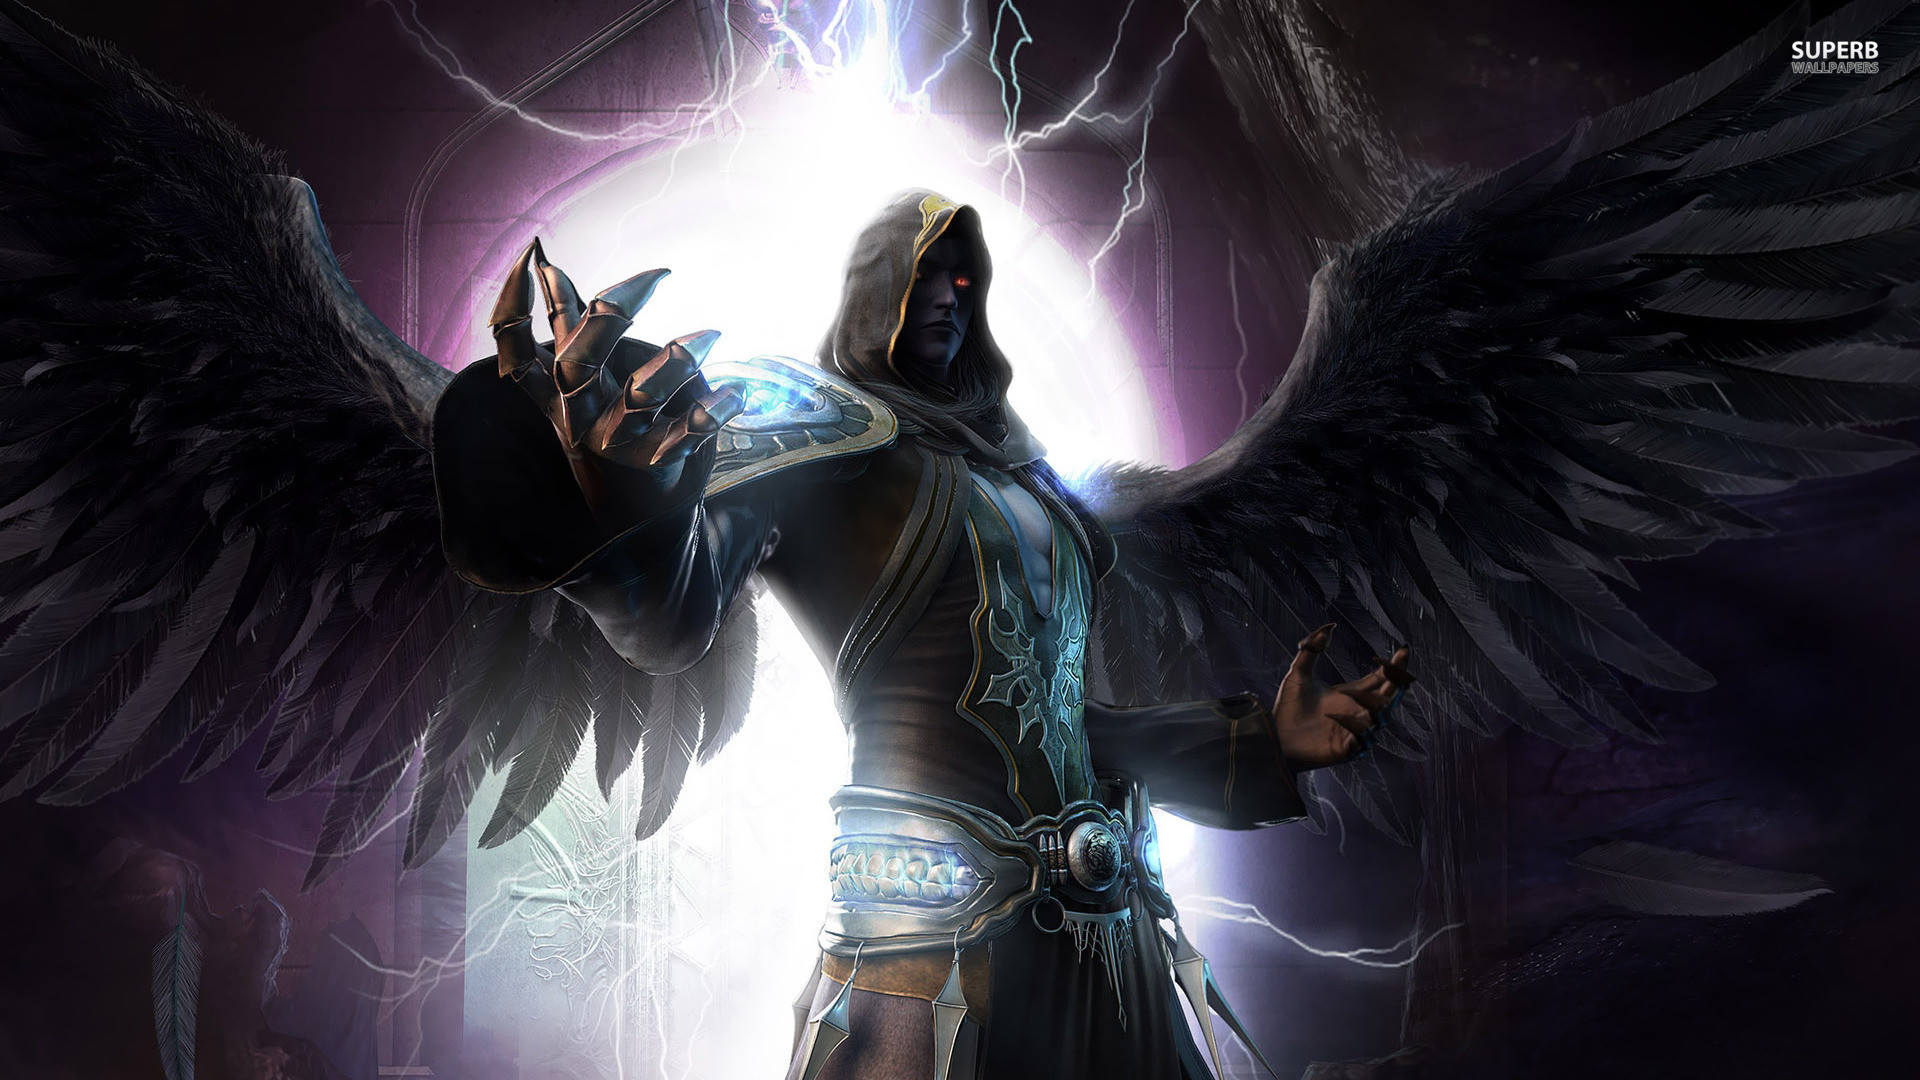 1920x1080  Dark Angel | Dark angel wallpaper - Fantasy wallpapers - #17698